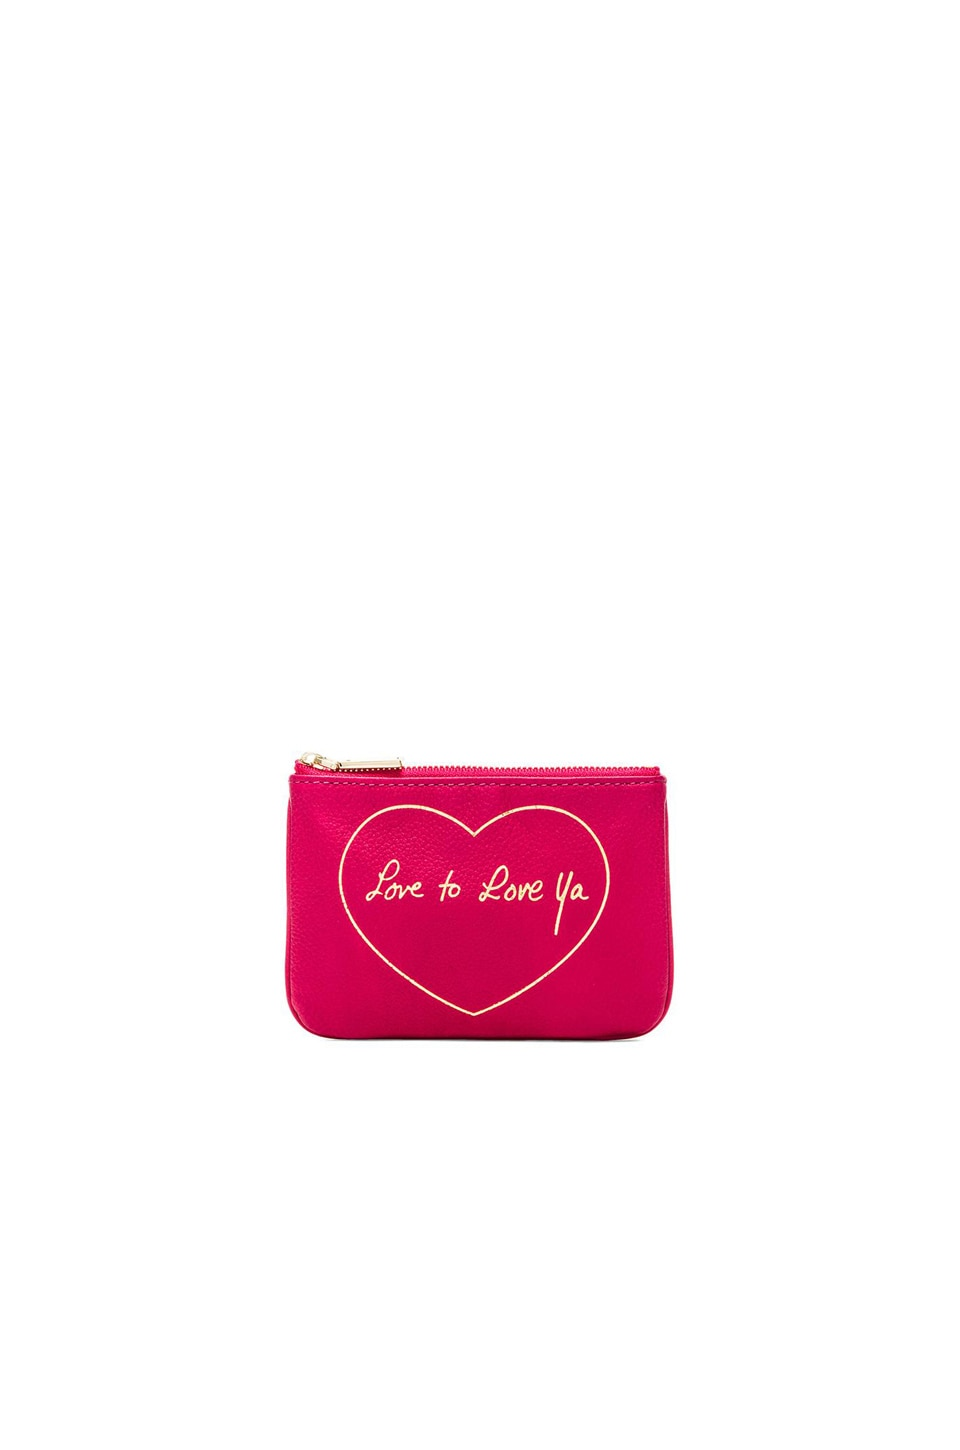 Rebecca Minkoff Love to Love Ya Cory Pouch in Zest